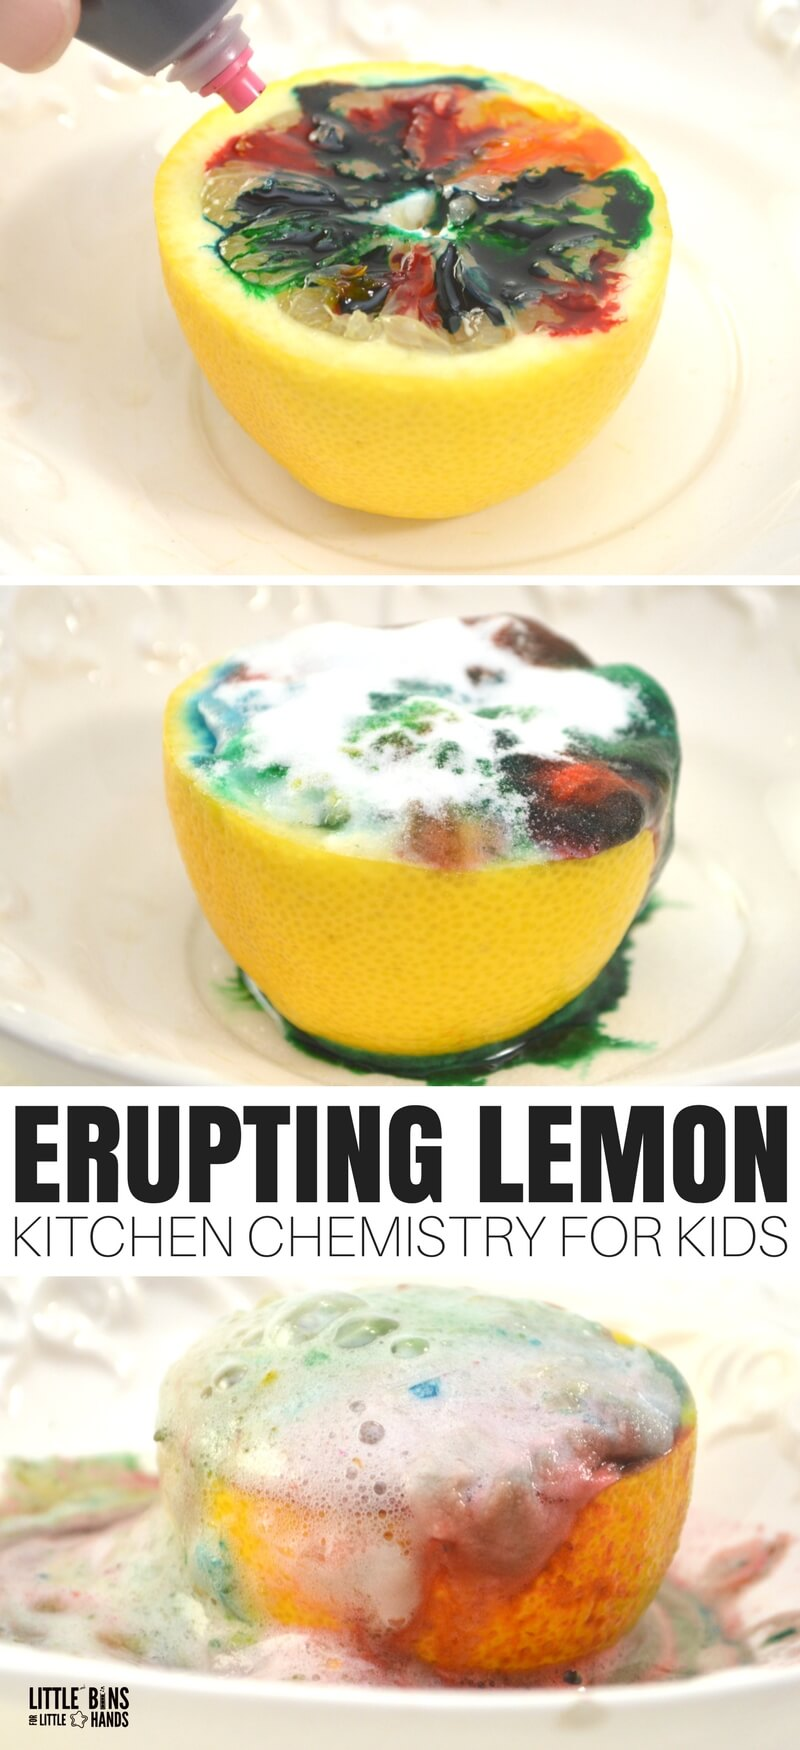 Great science is as simple as walking into the kitchen with this erupting lemon chemistry experiment! We enjoy all kinds of simple science and STEM using common household ingredients. This fun science activity can even be taken outside for easy clean up. Perfect for summertime science any day of the year